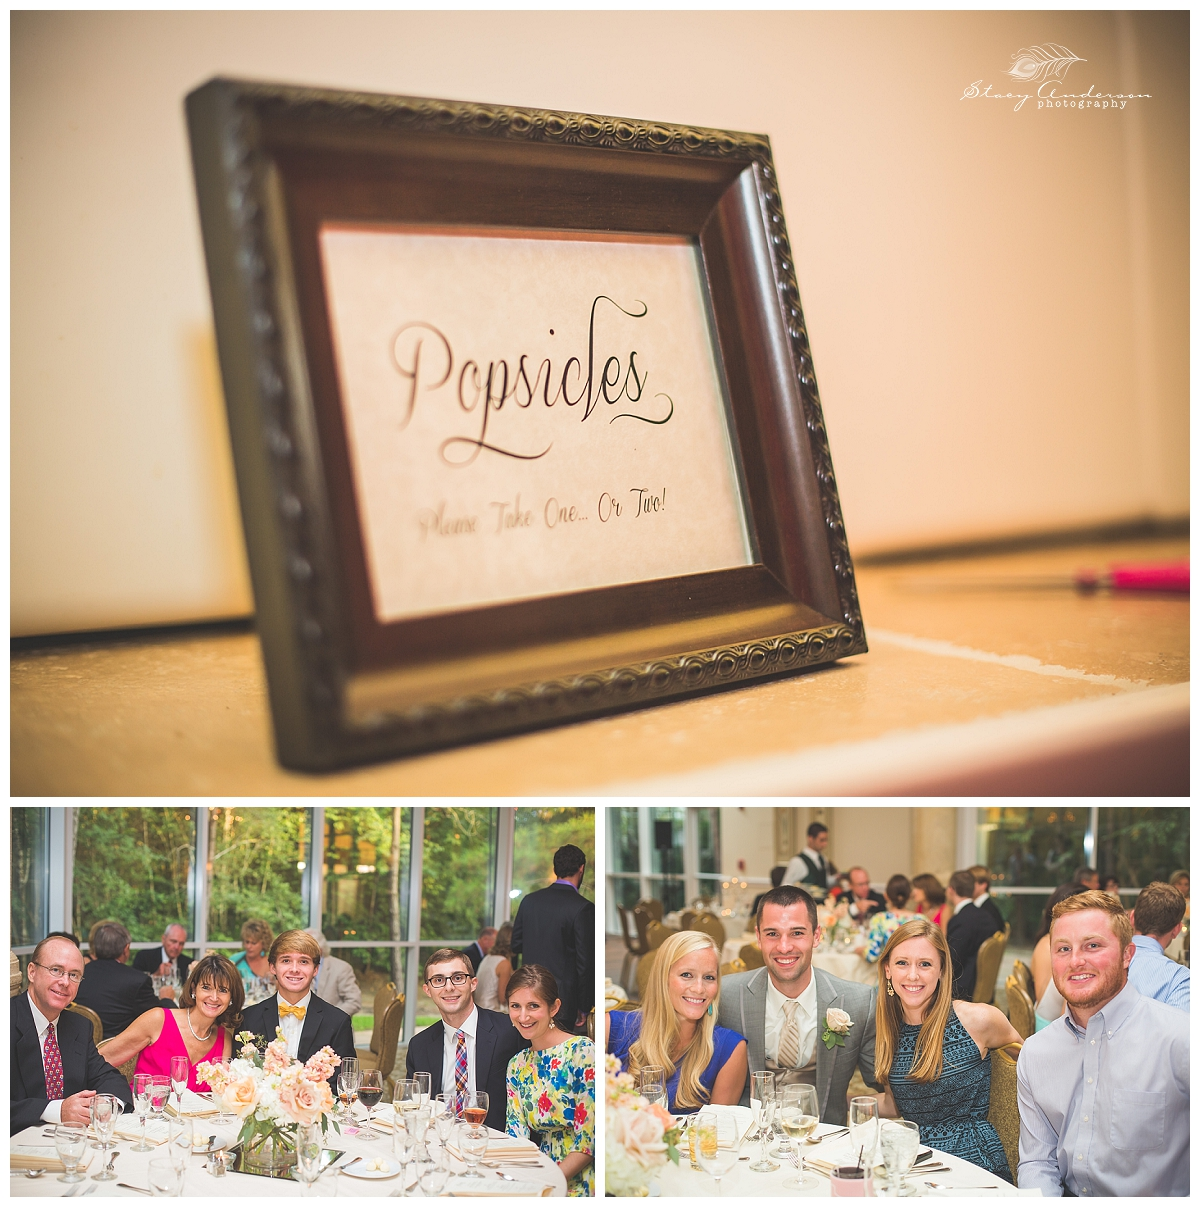 Popsicles are the perfect treat for a Texas summer wedding!